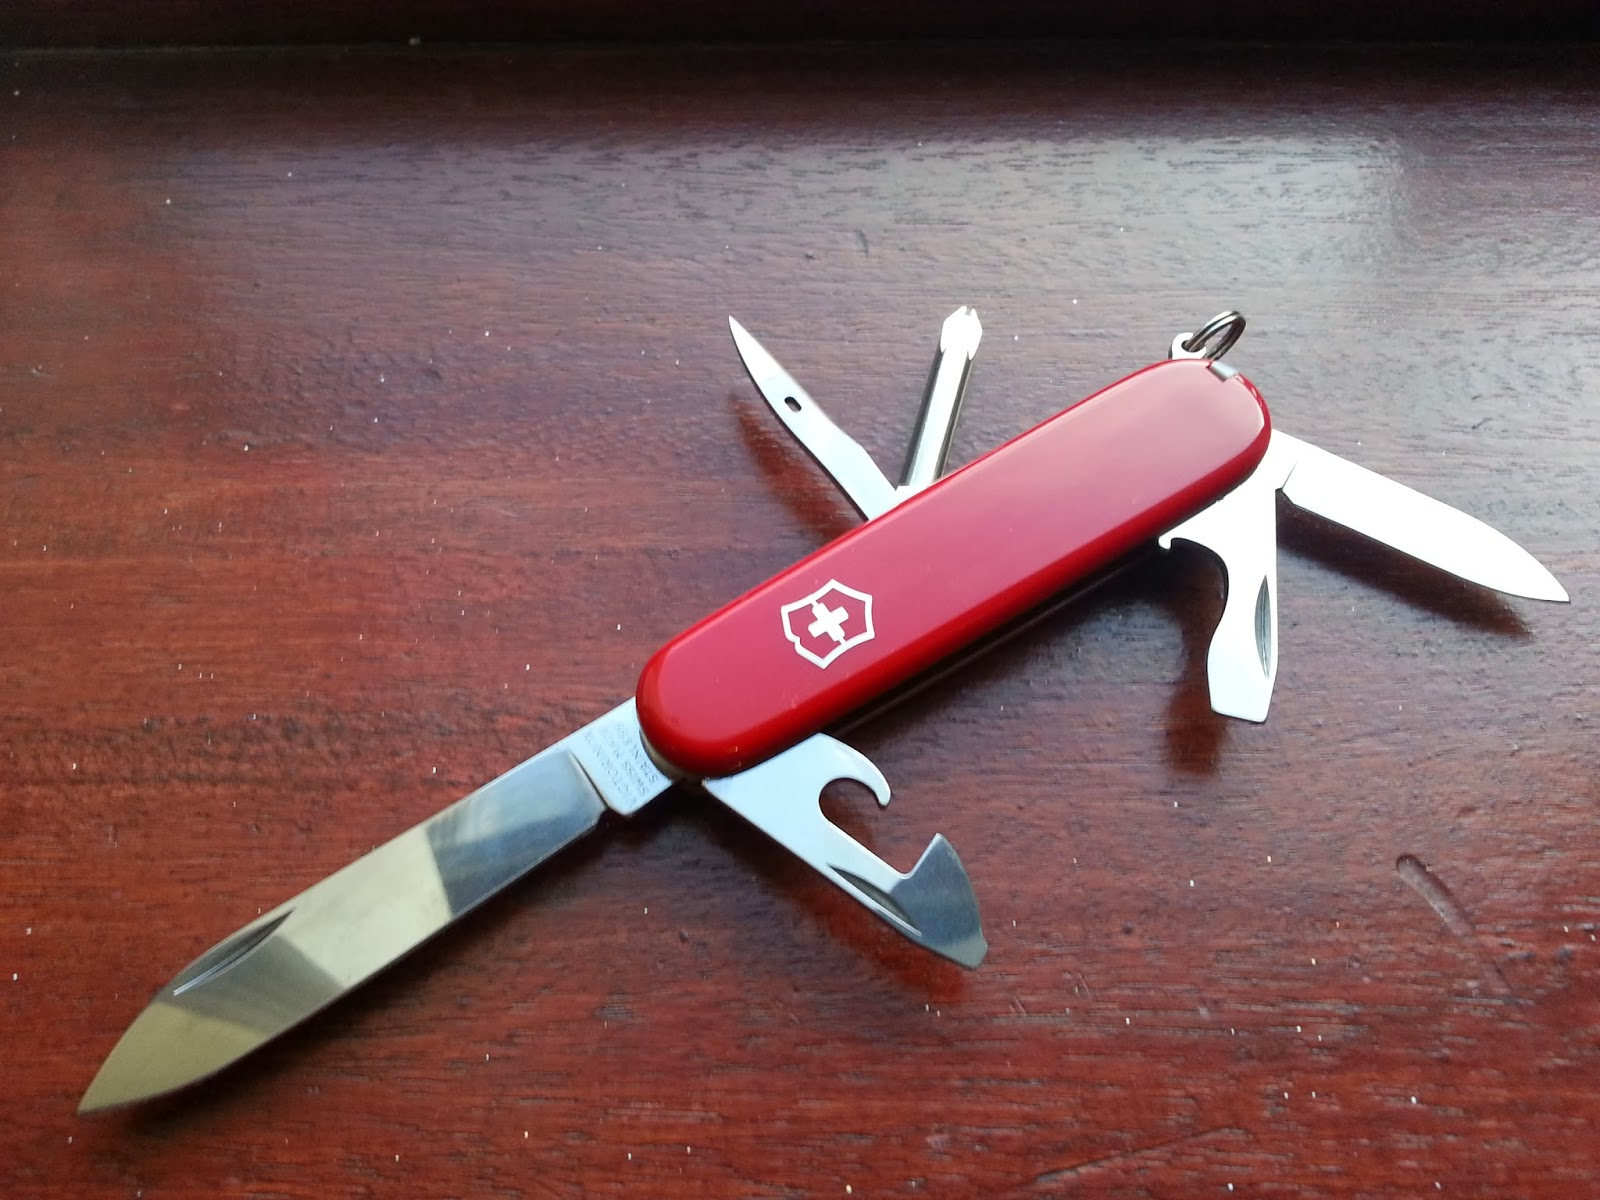 Surviving In Argentina Back To Basics With The Victorinox